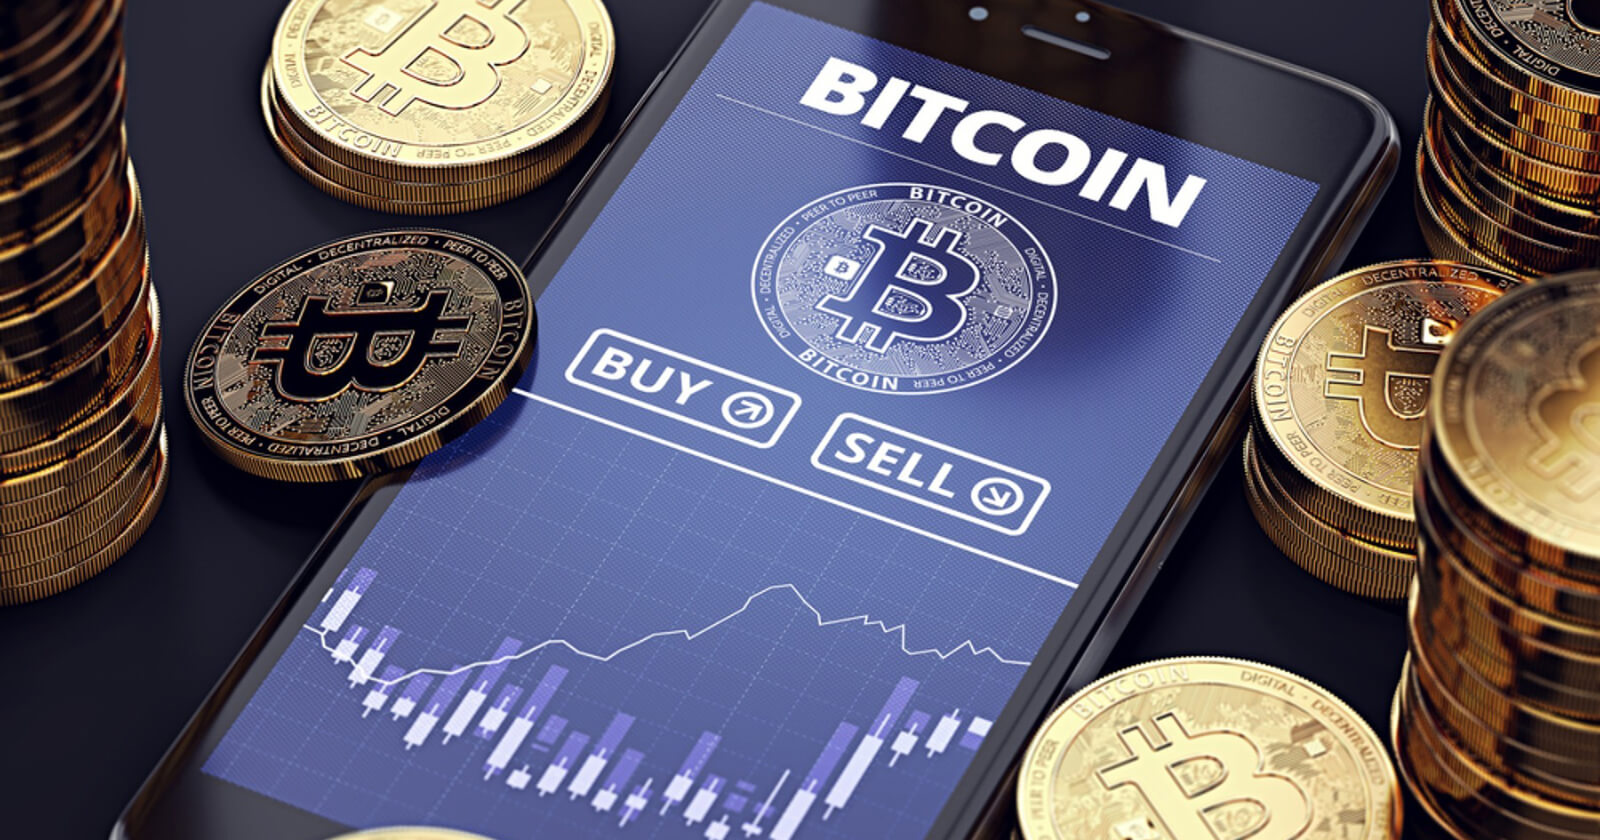 How Does Crypto Currency Gain It's Value